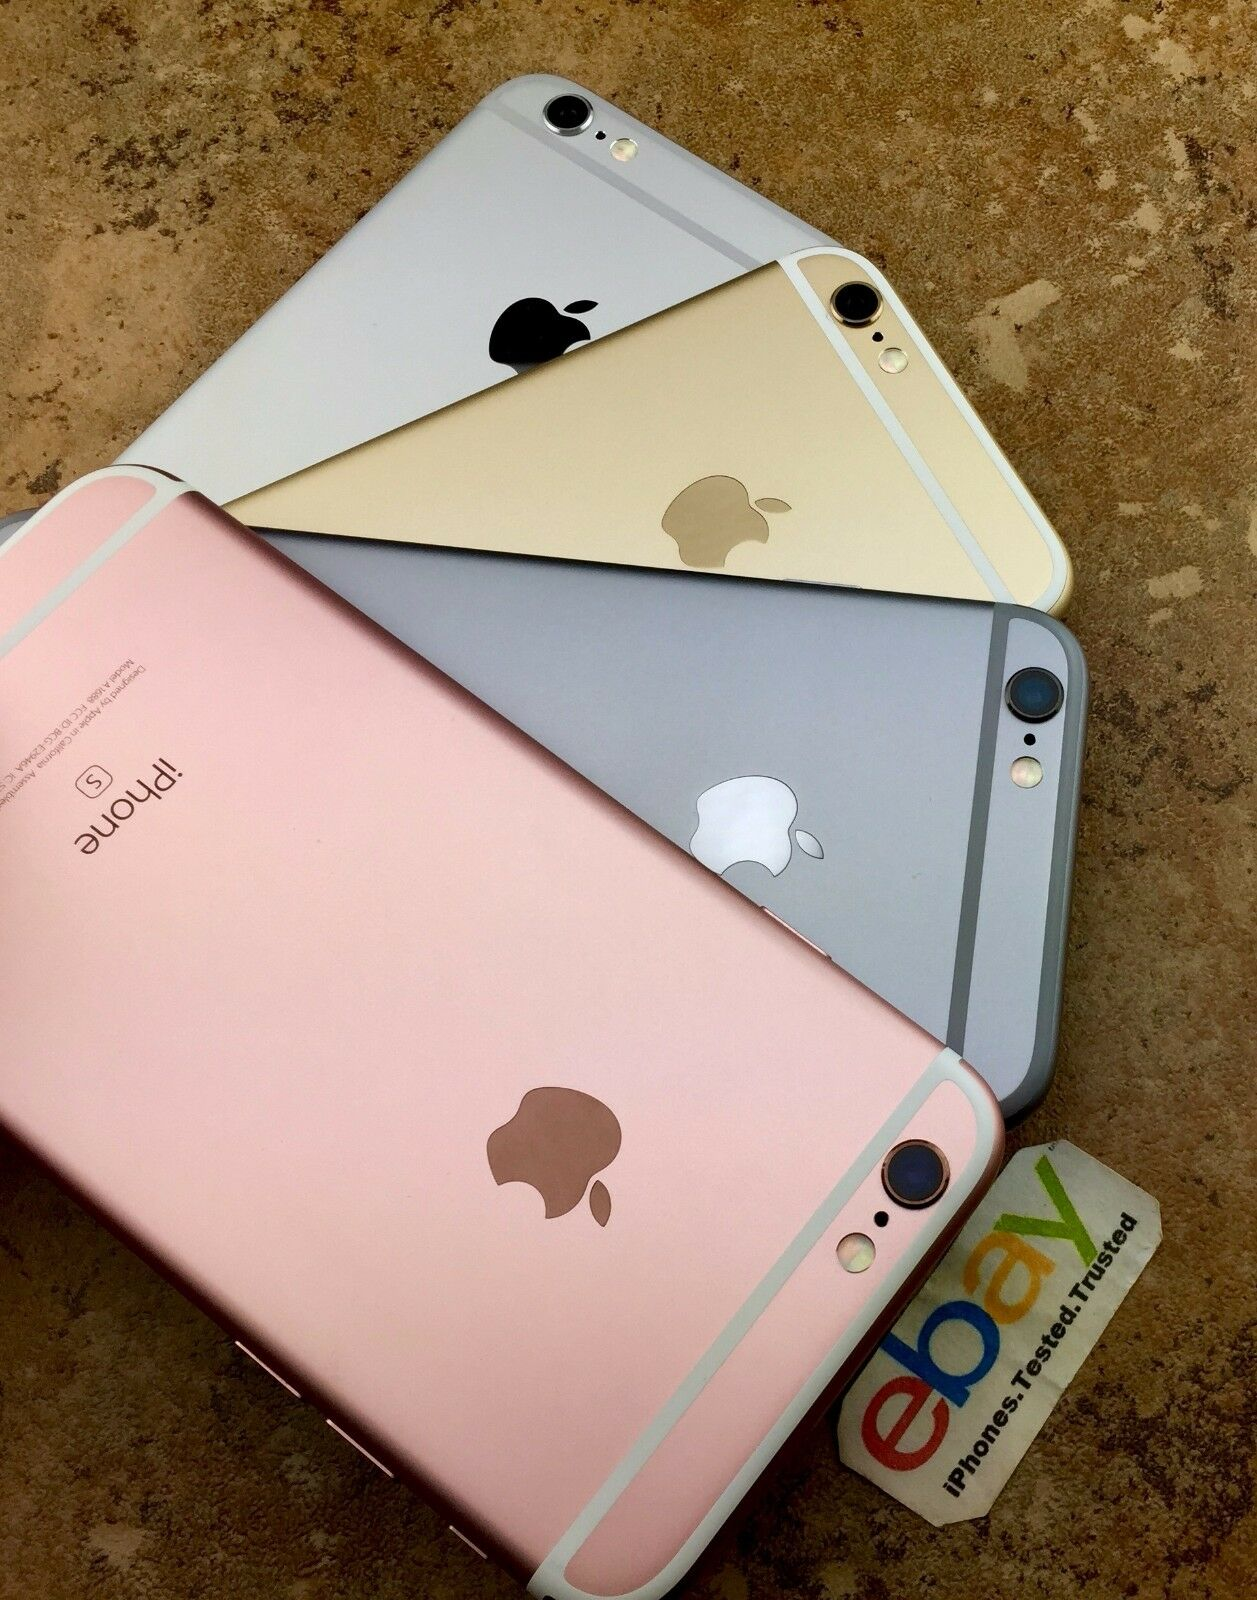 APPLE IPHONE 6S Rose Gold Silver Space Gray Verizon AT&T ...